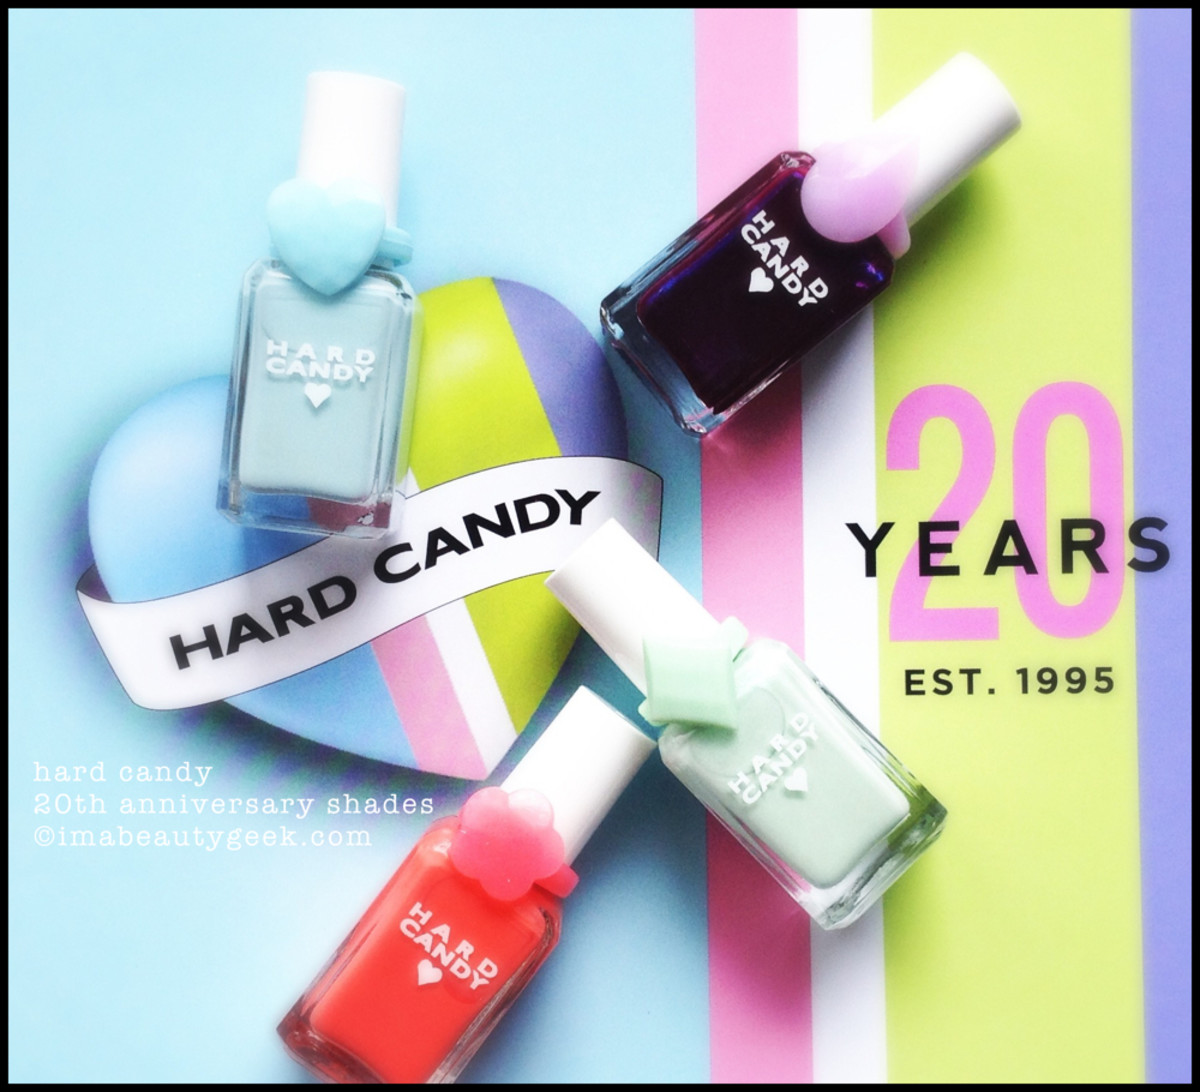 Hard Candy Nail Polish Sky Mint Tangerini Scam 20th Anniversary Polish